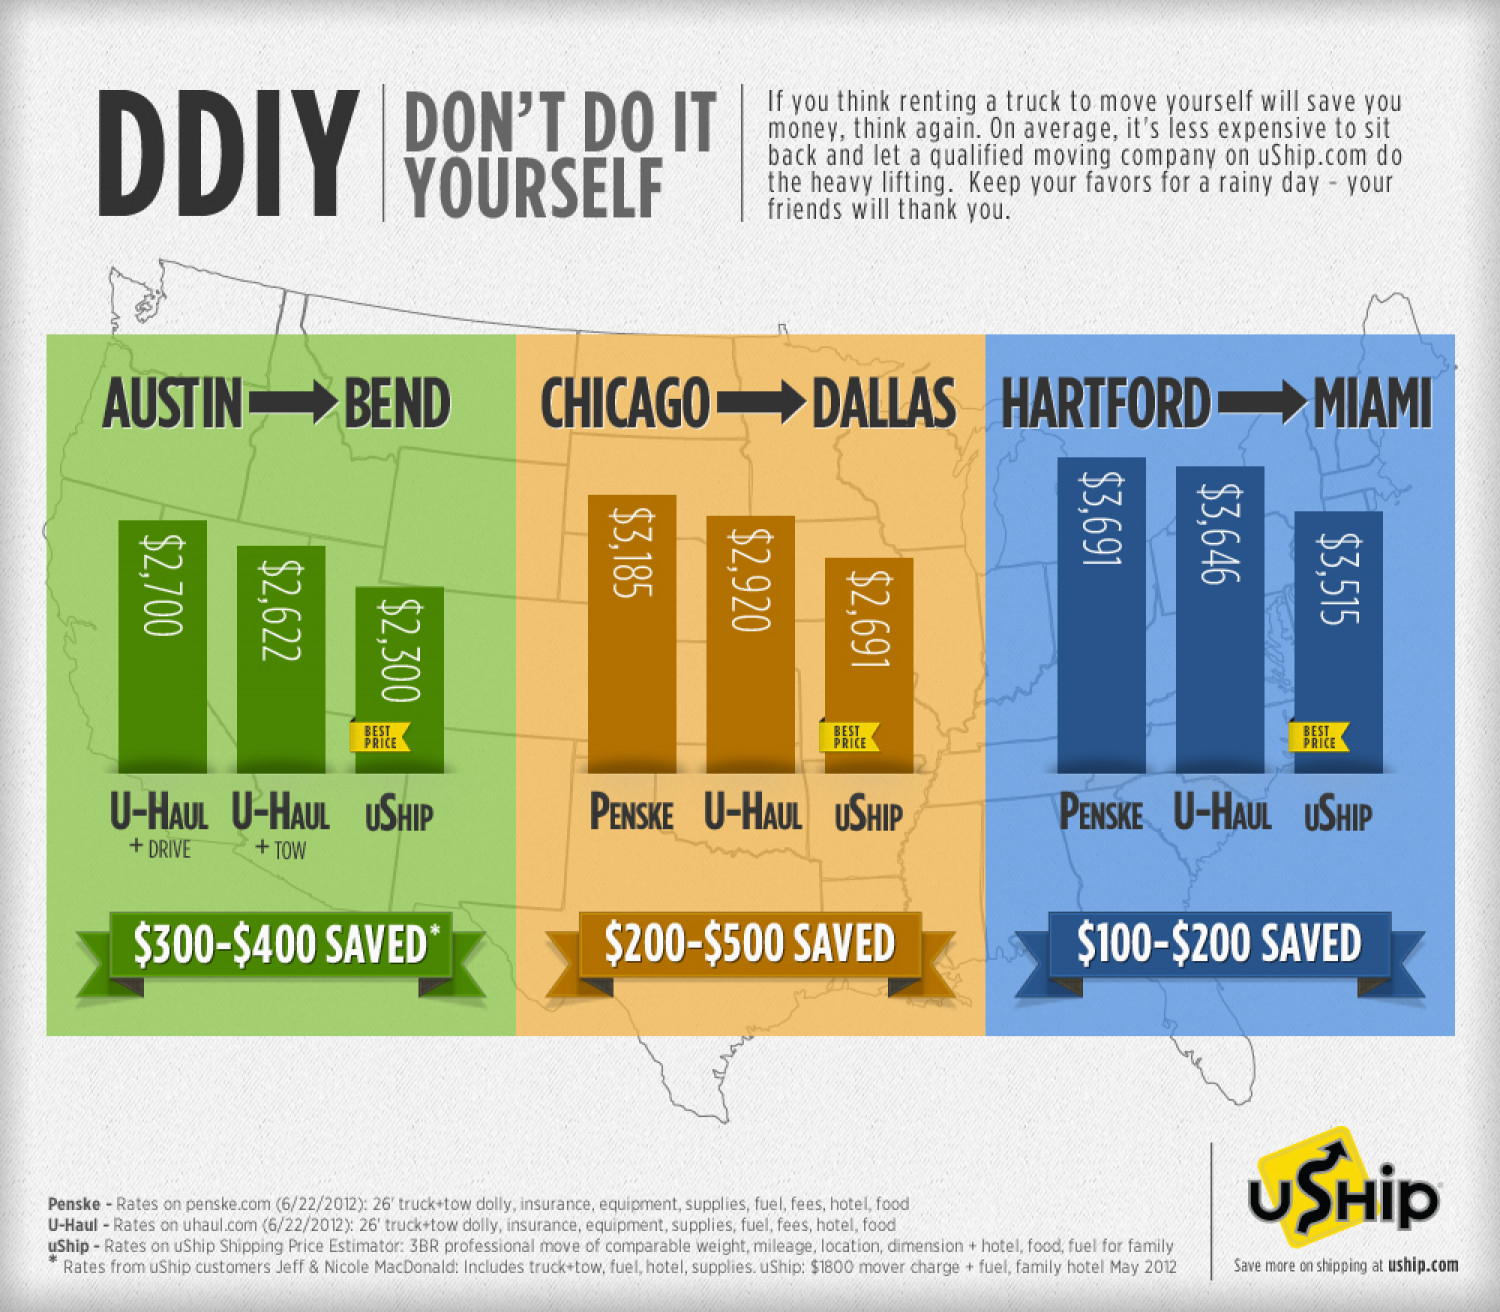 DDIY - Don't Do It Yourself Infographic